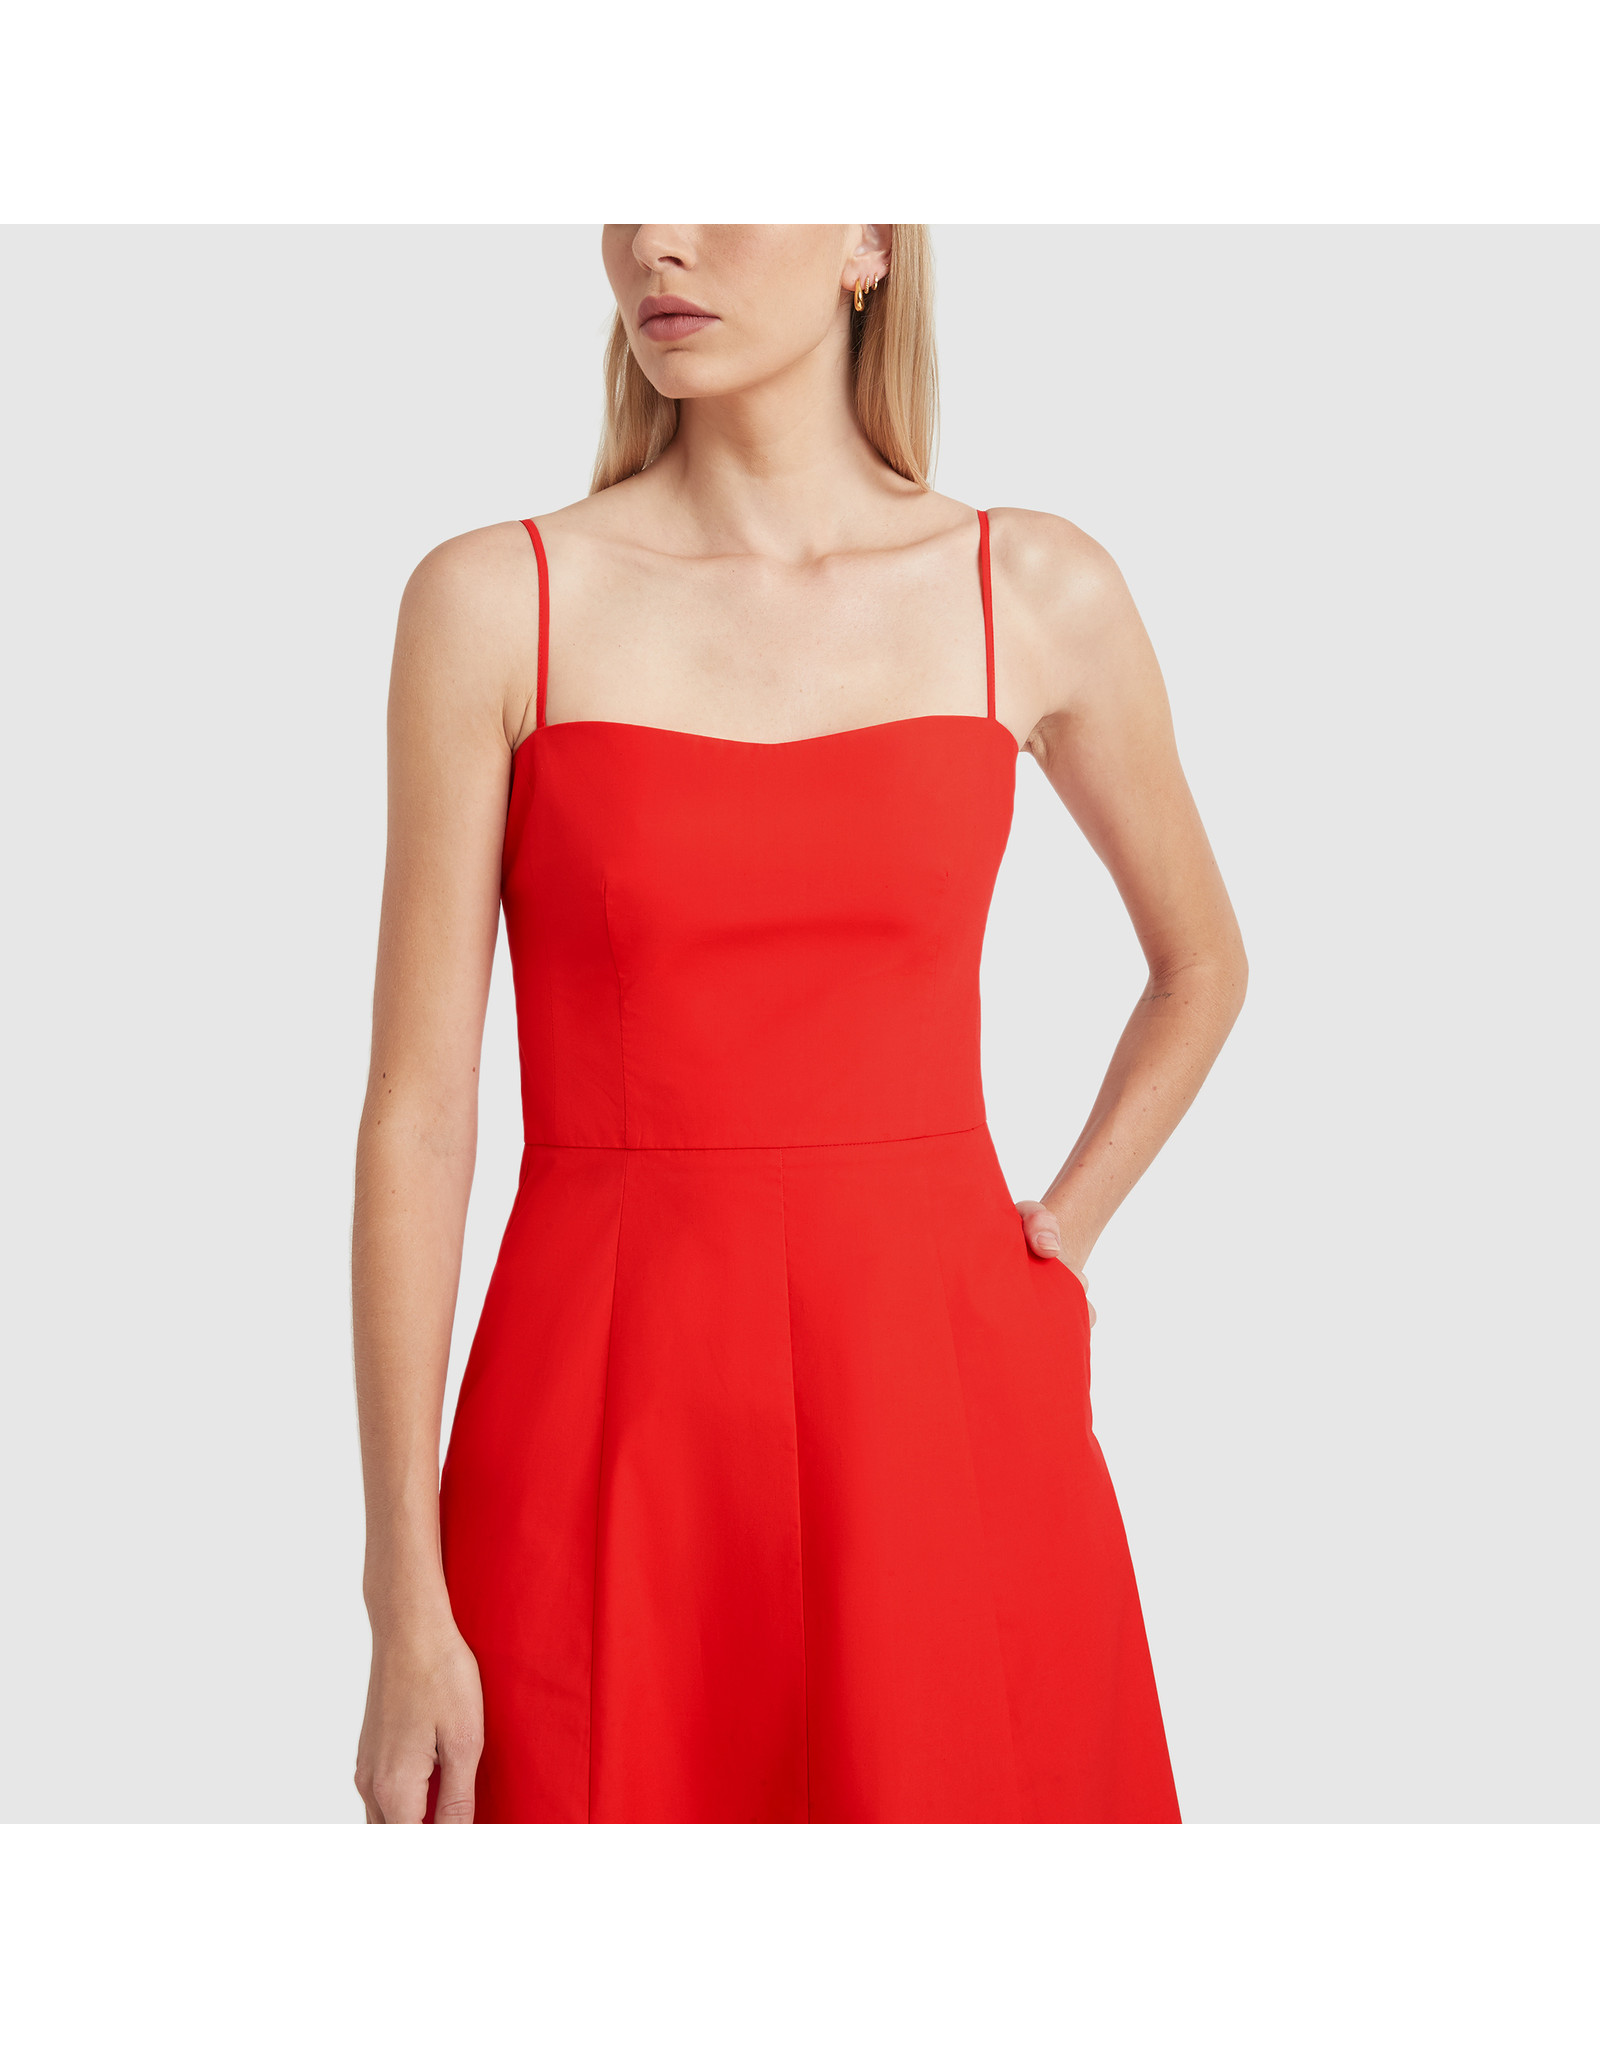 G. Label Cambria Skinny Strap Mid-Length dress (Color: Red, Size: 0)